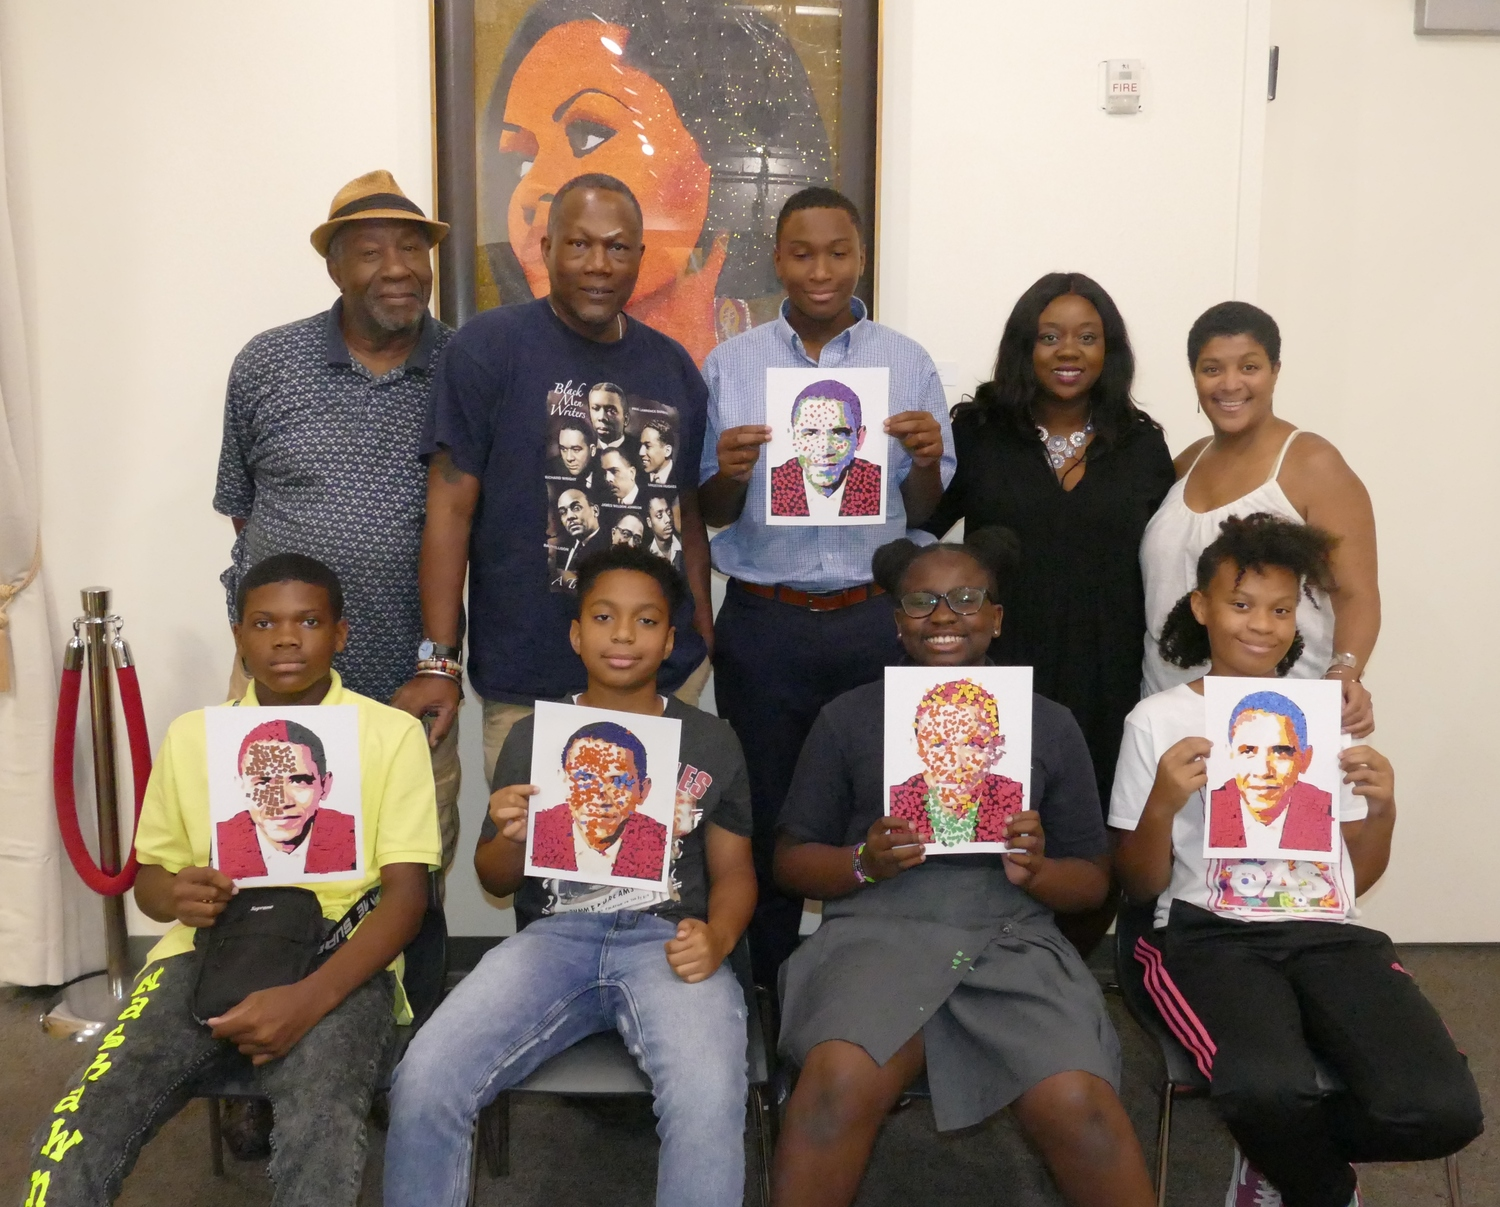 Artist Lennox Commissiong Teaches Harlem Youth To Create Barack Obama Portraits With Pointillism Technique